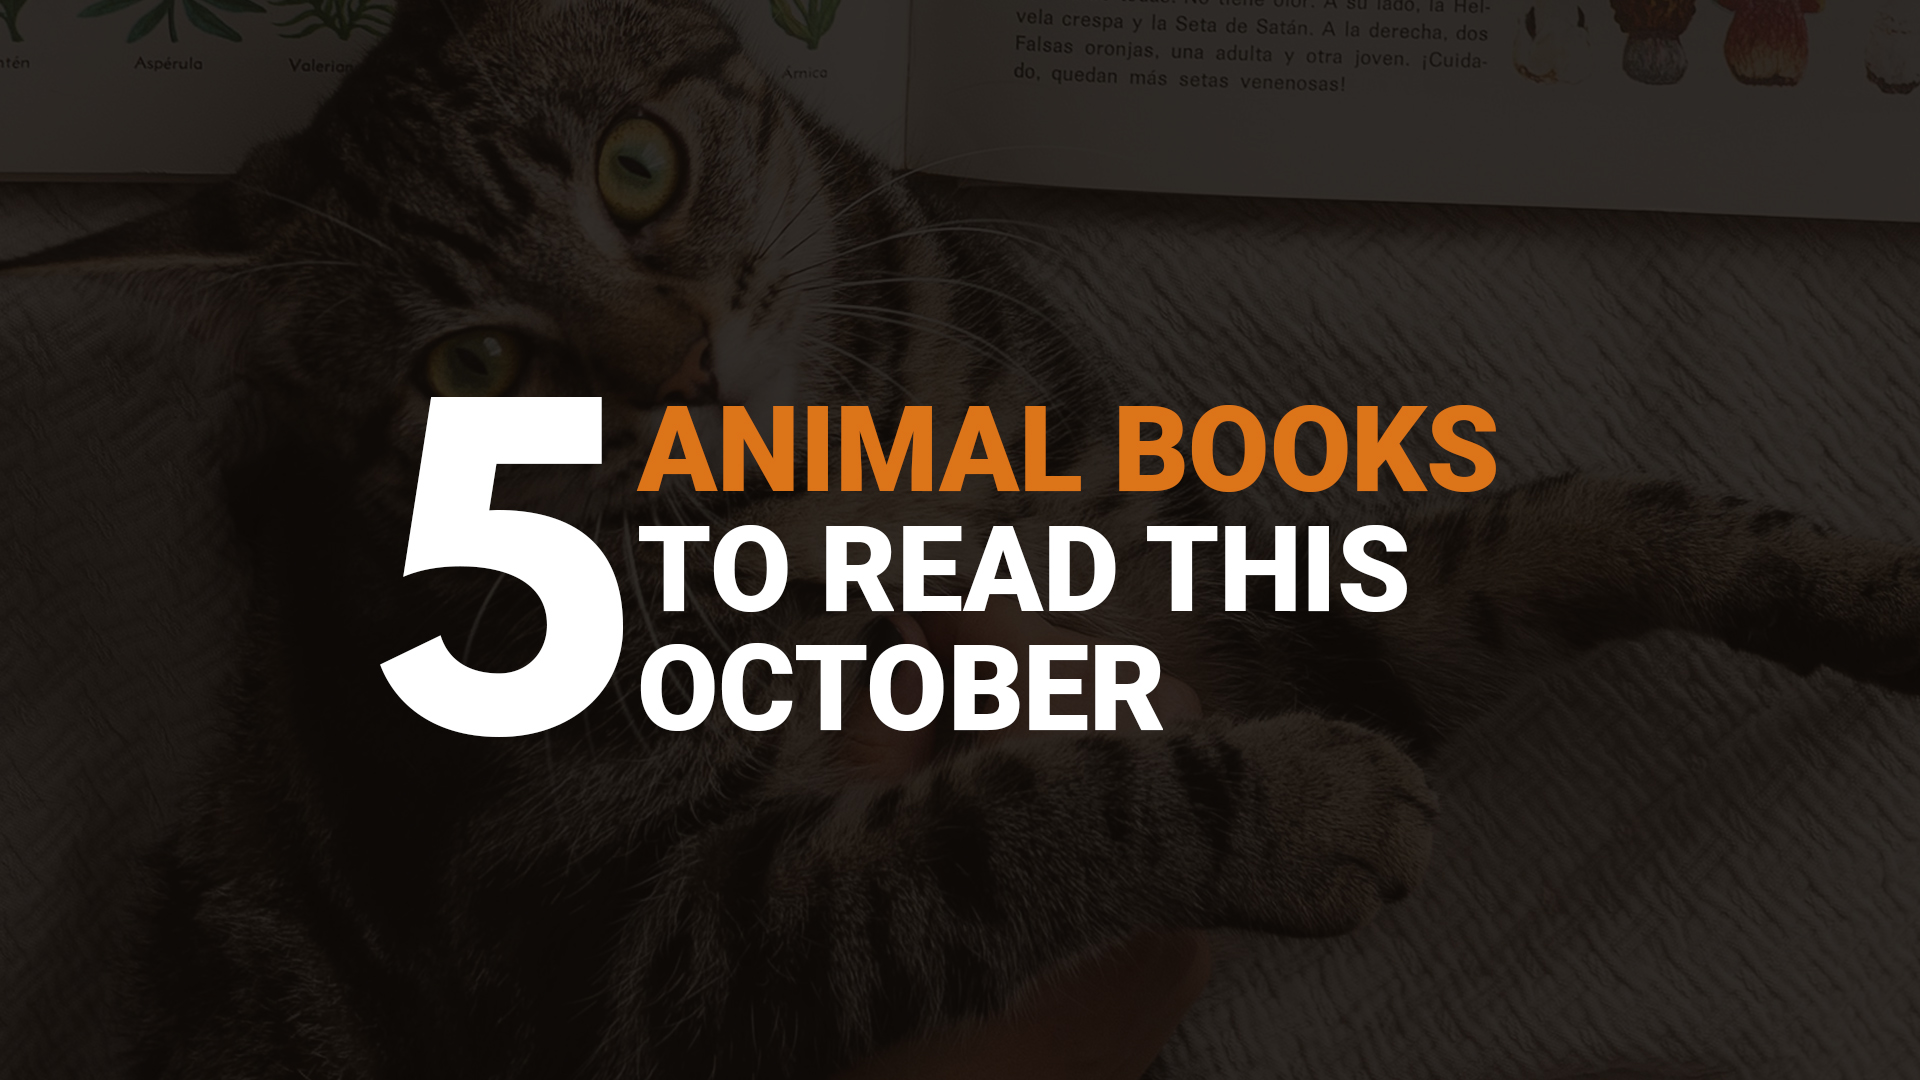 5 Animal Books to Read This October banner